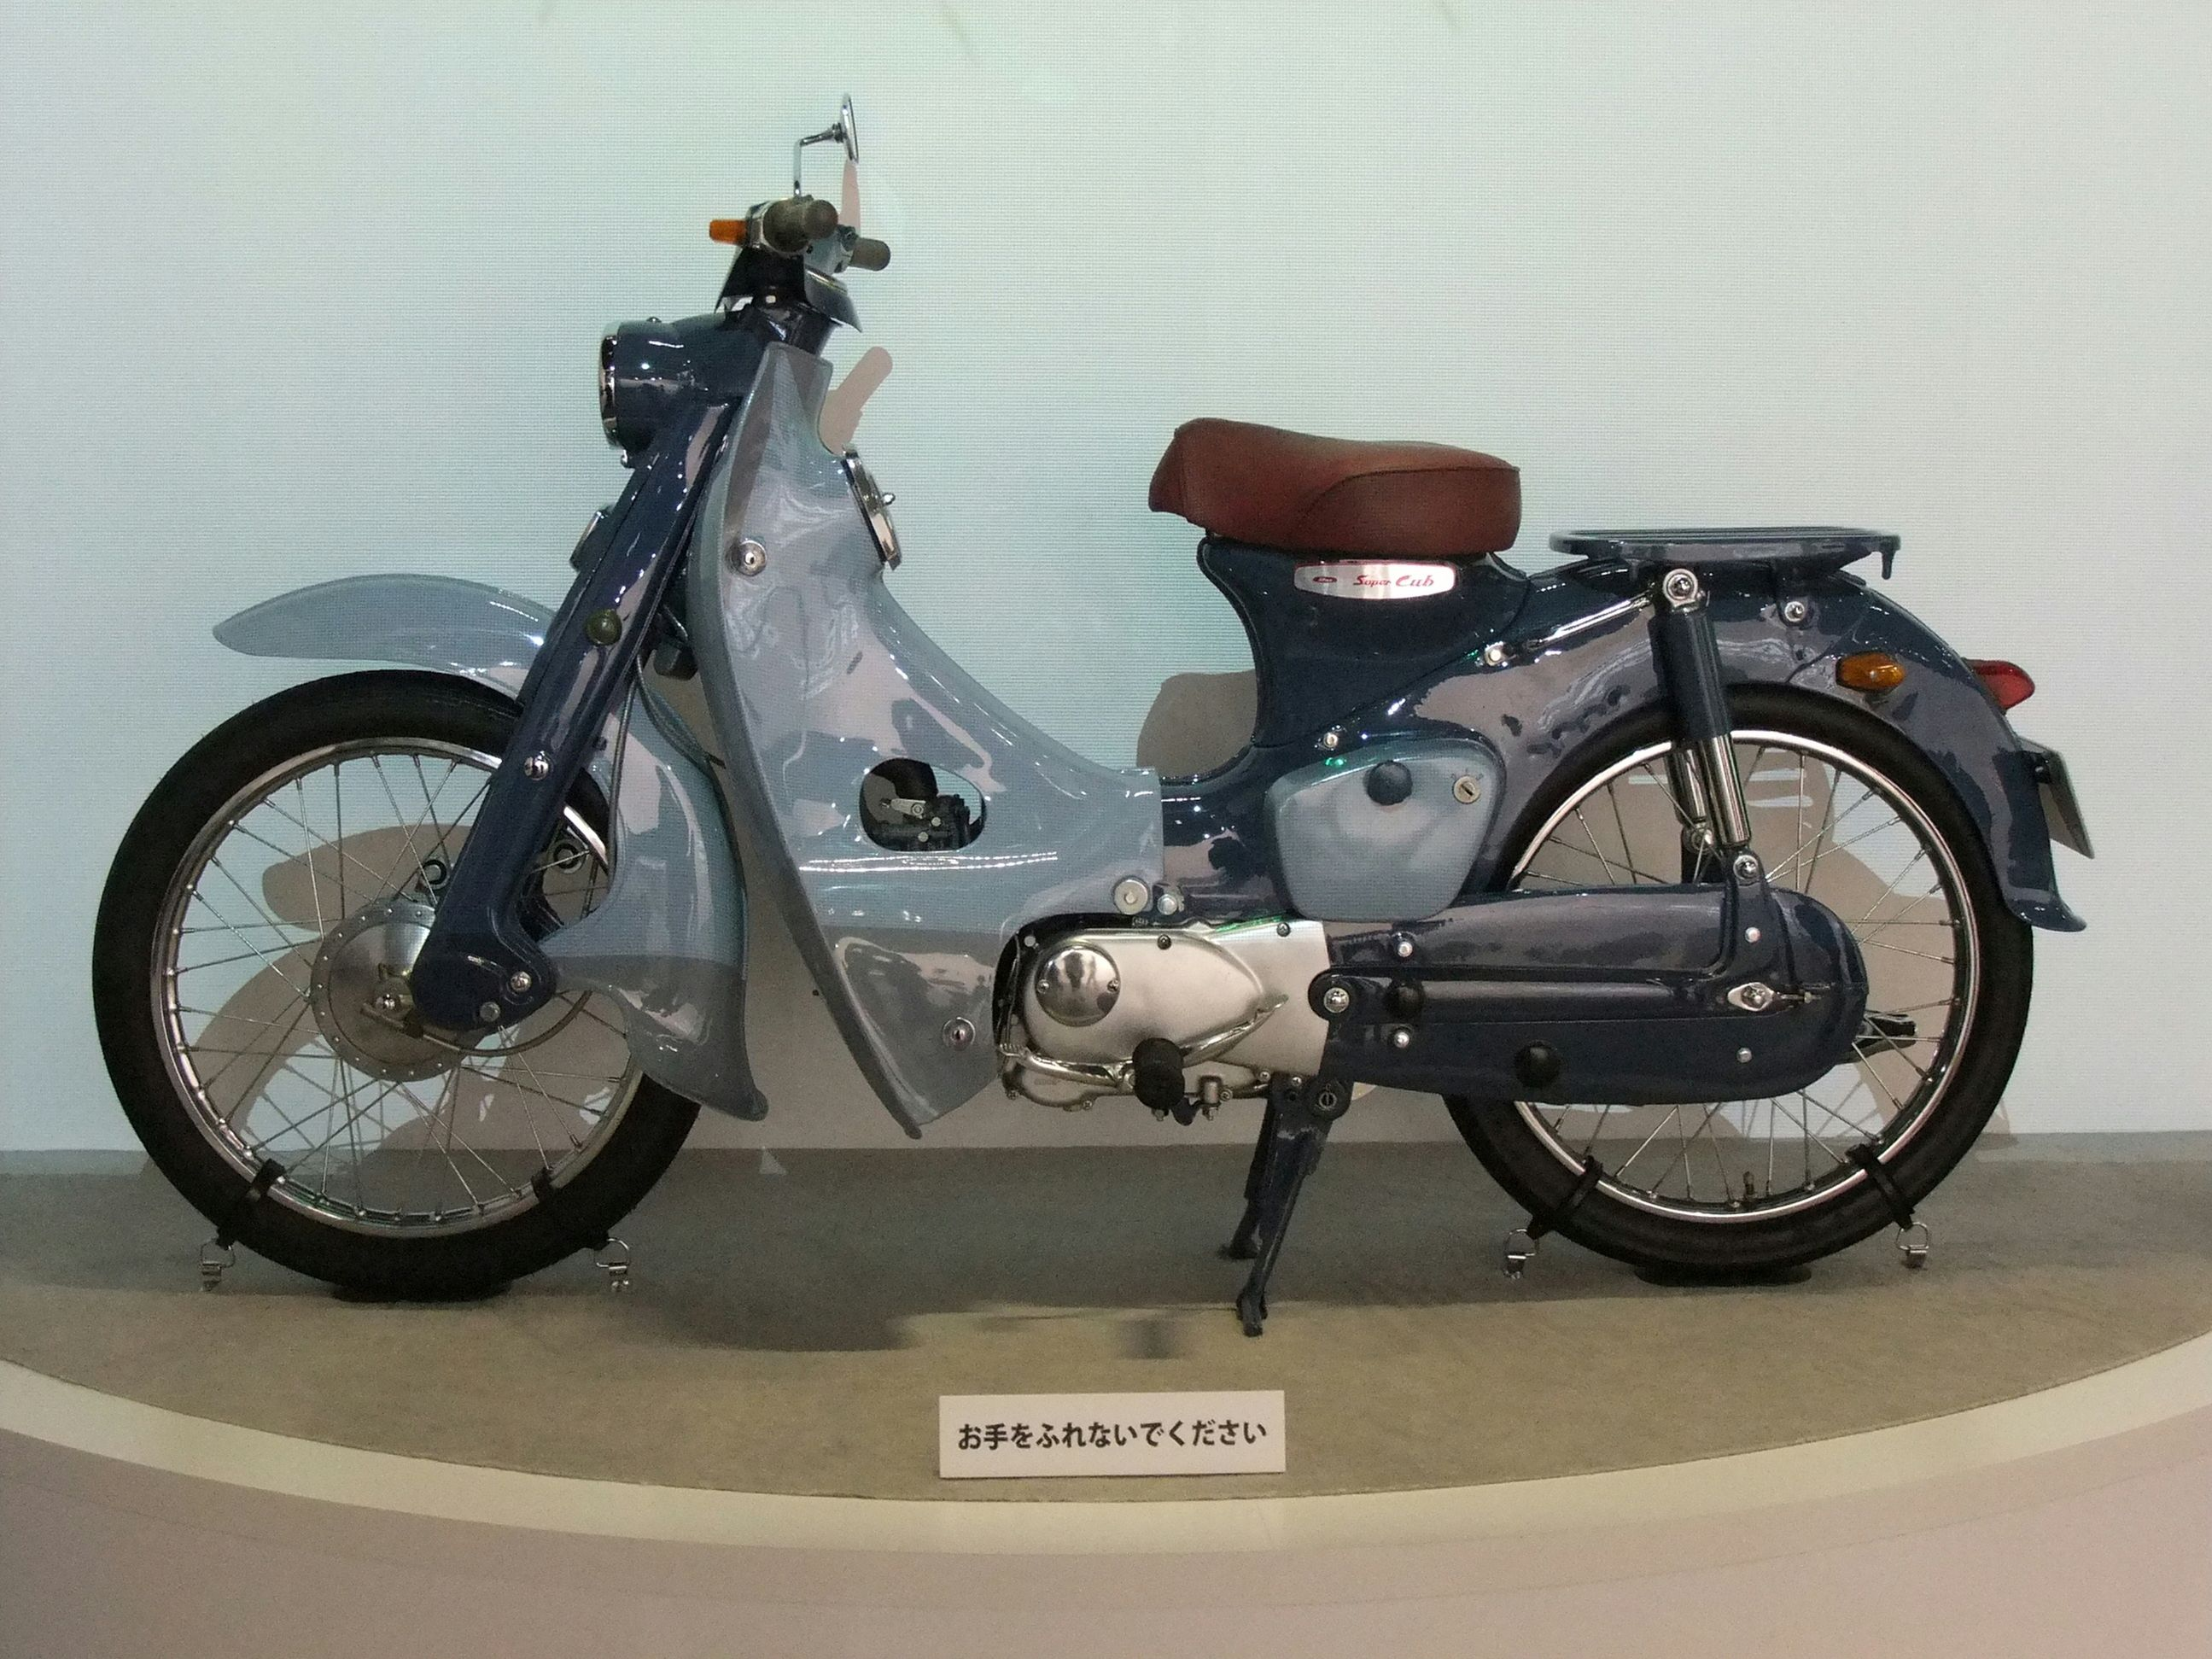 Honda Super Cub The Complete Information And Online Sale With Free Drc Moto Led Ez Electric Wire Kit Crfs Only Your Source For Shipping Order Buy Now Lowest Price In Best Store